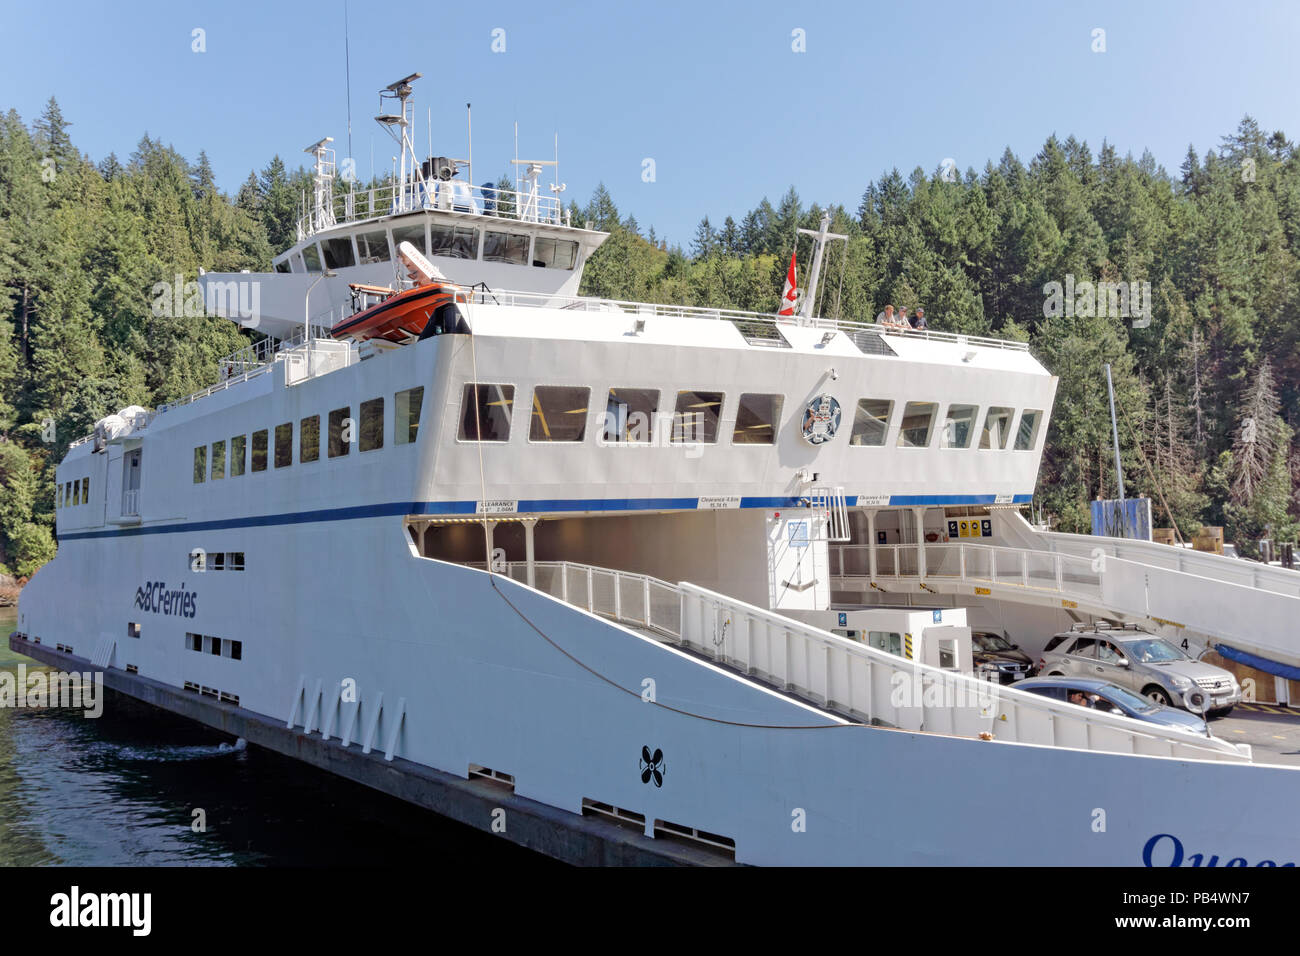 The Bowen Island ferry docked at Snug Cove on Bowen Island near Vancouver, British Columbia, Canada - Stock Image